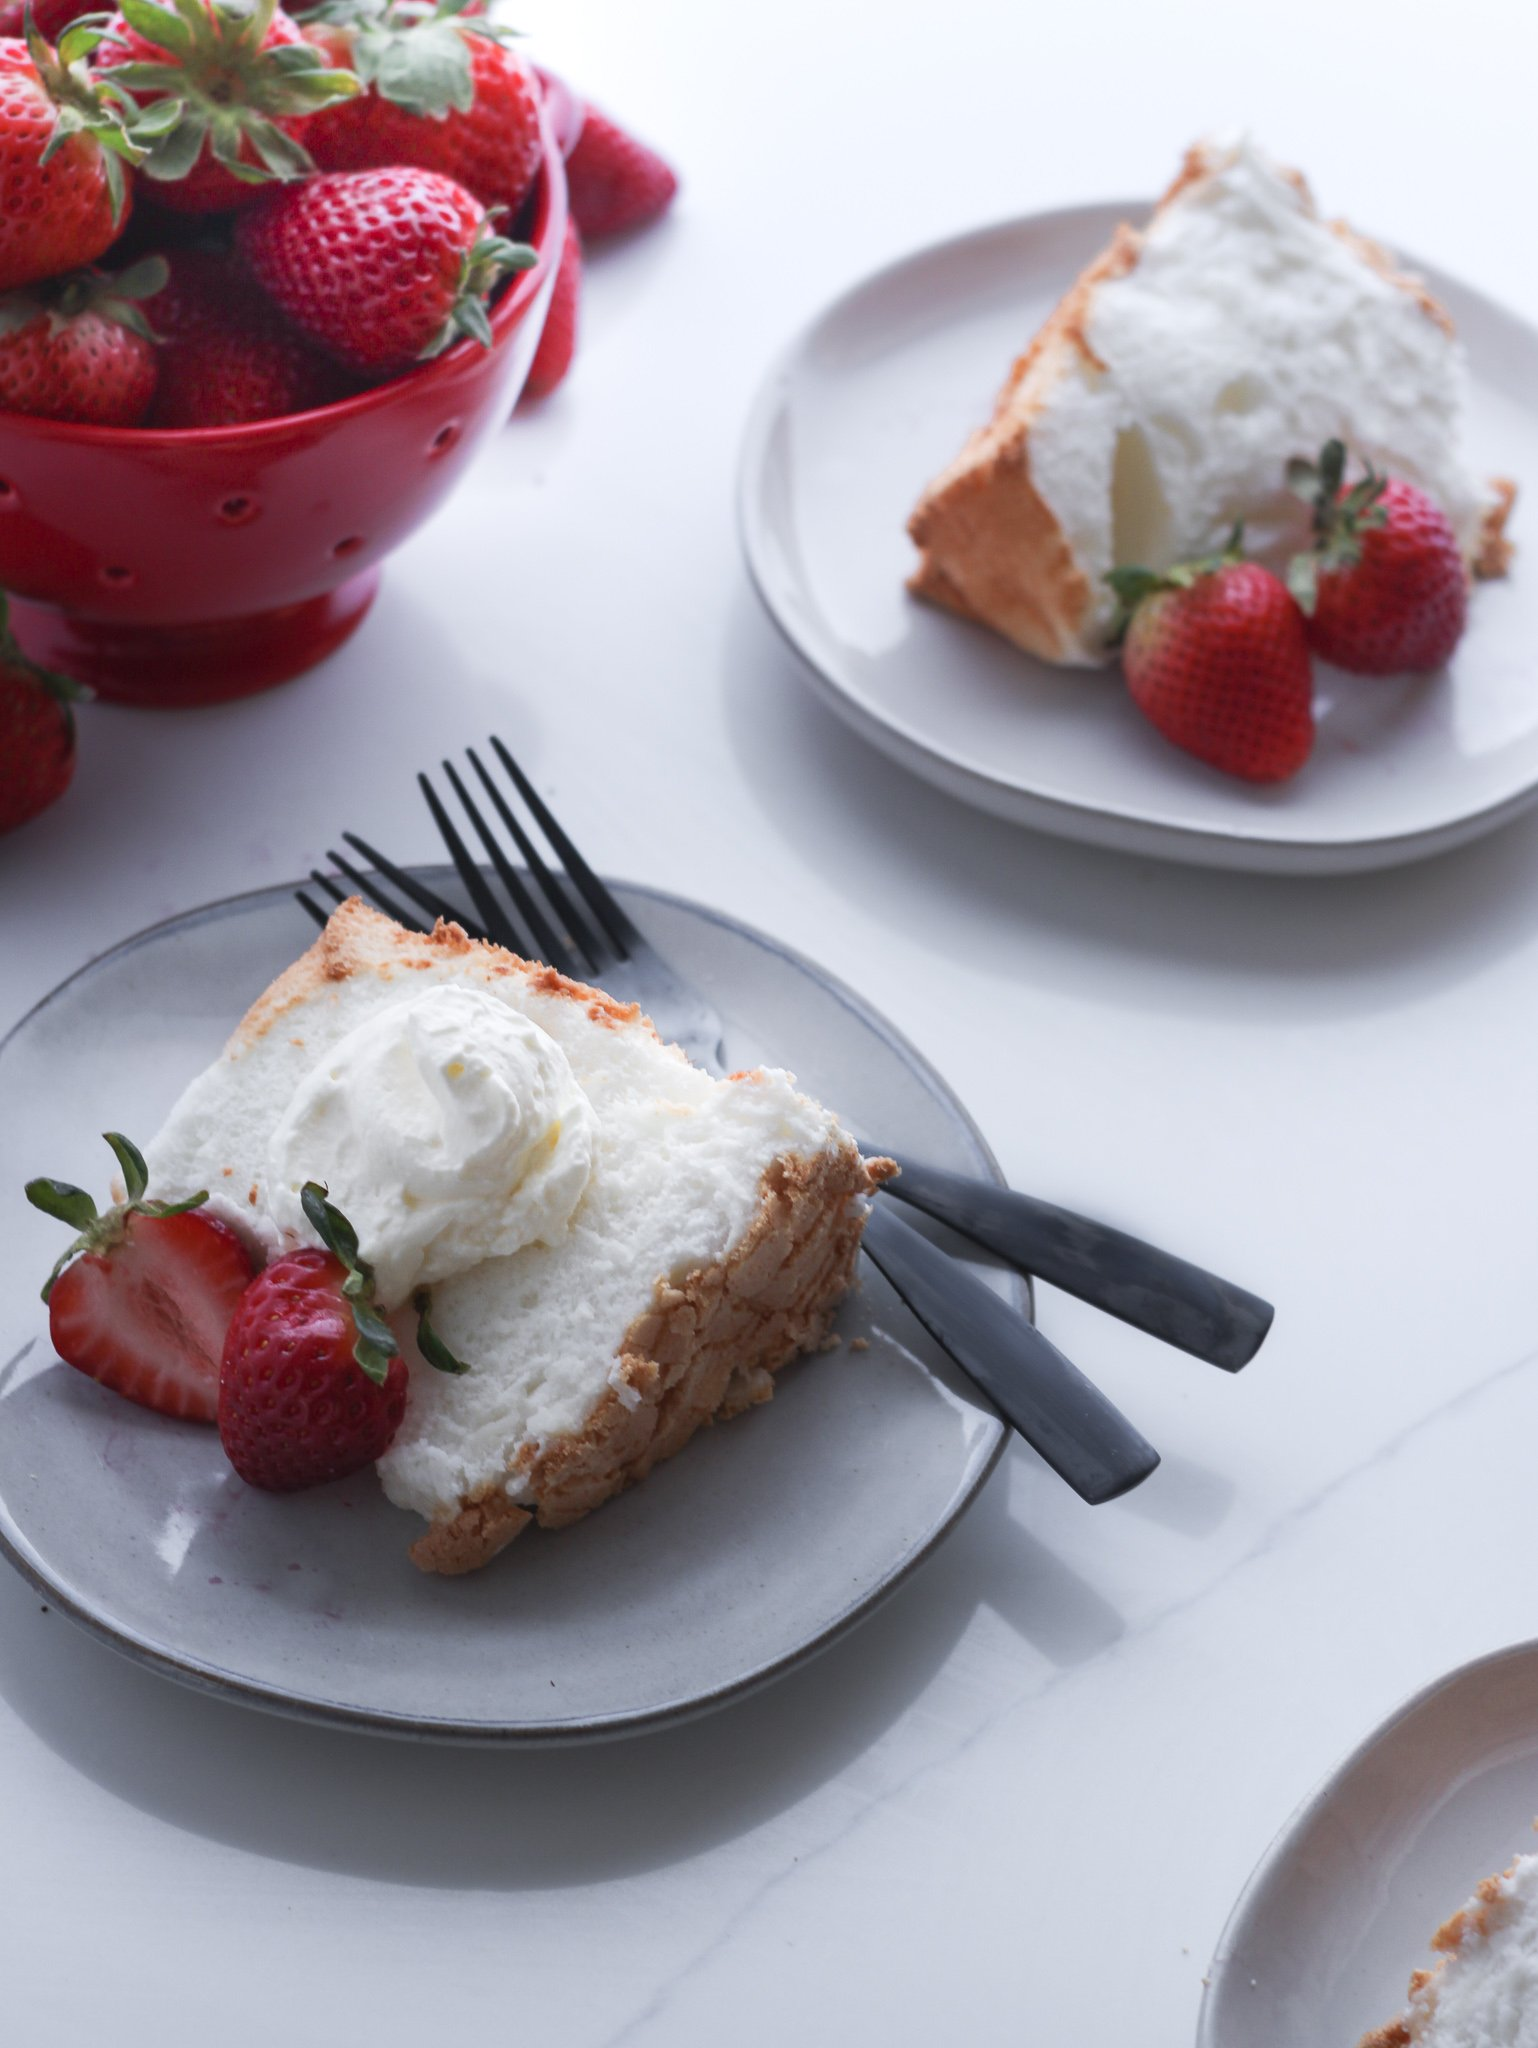 Gluten-free Angel Food Cake sliced and being served on top of small light grey plates. There is a red bowl of fresh strawberries in the upper right hand corner. The center slice has a dollop of fresh whipped cream with some fresh sliced berries and black forks to be enjoyed with.